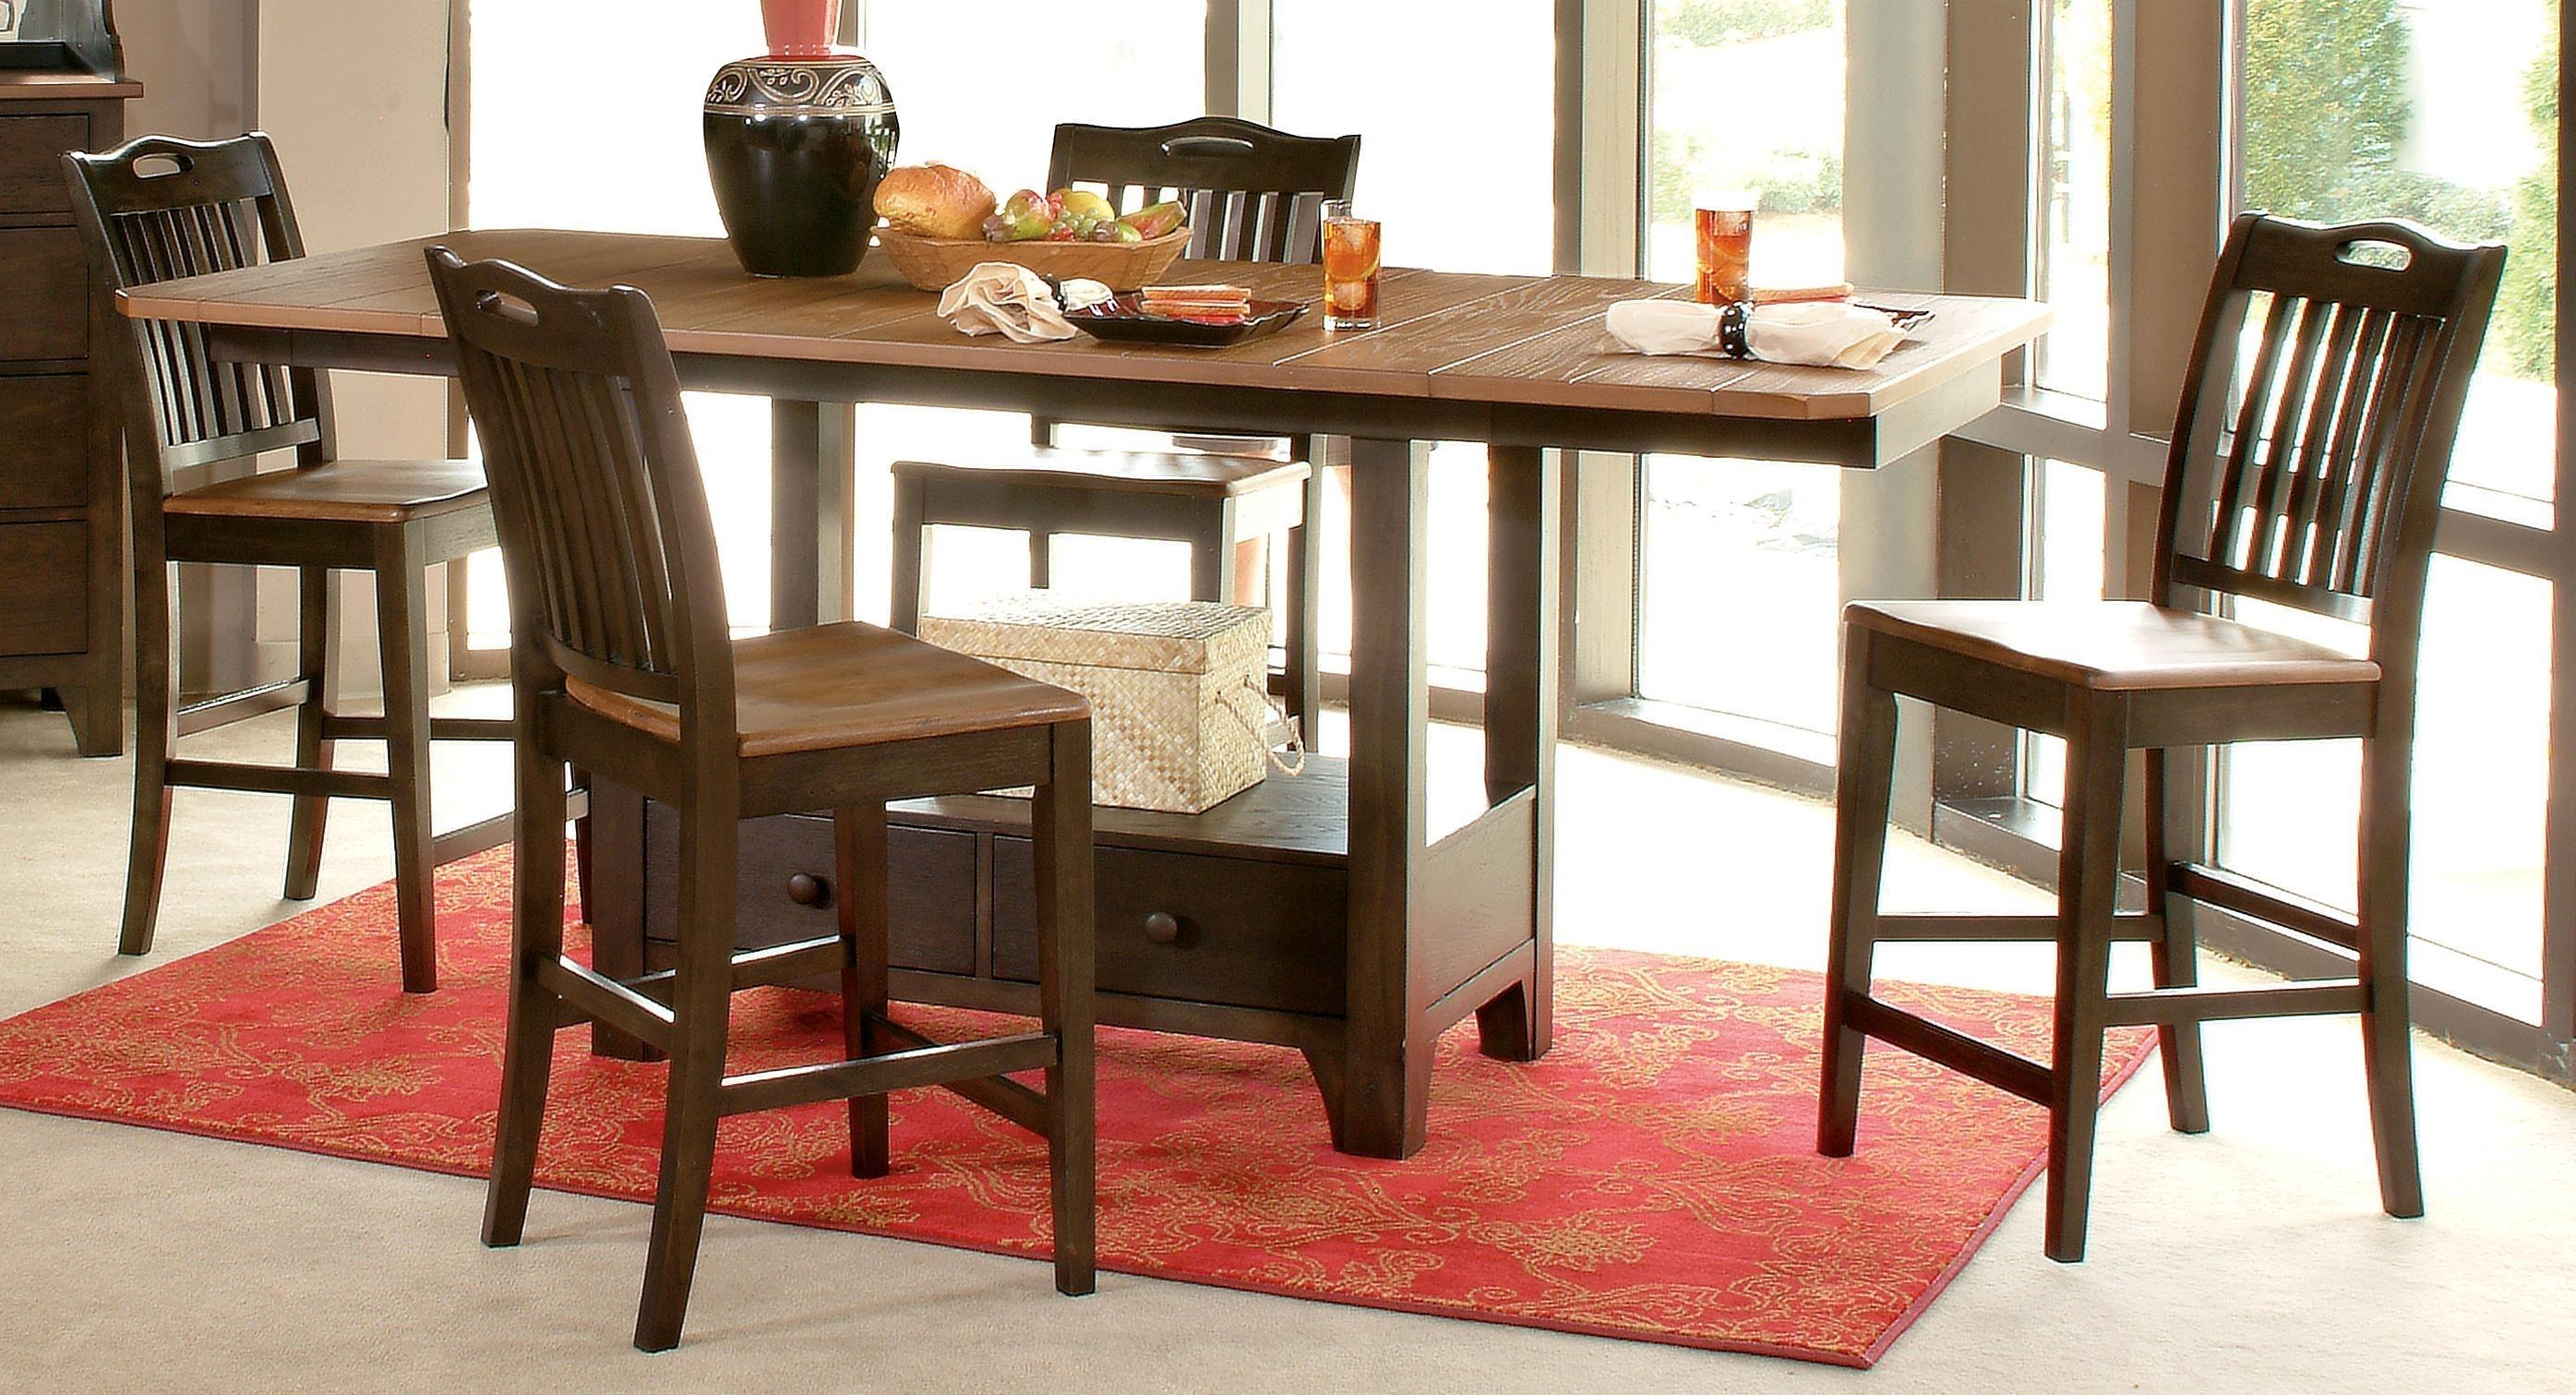 Morris Home Furnishings Grafton Grafton 5 Piece Counter Dining Set - Item Number: 130-484T/B/402(4)